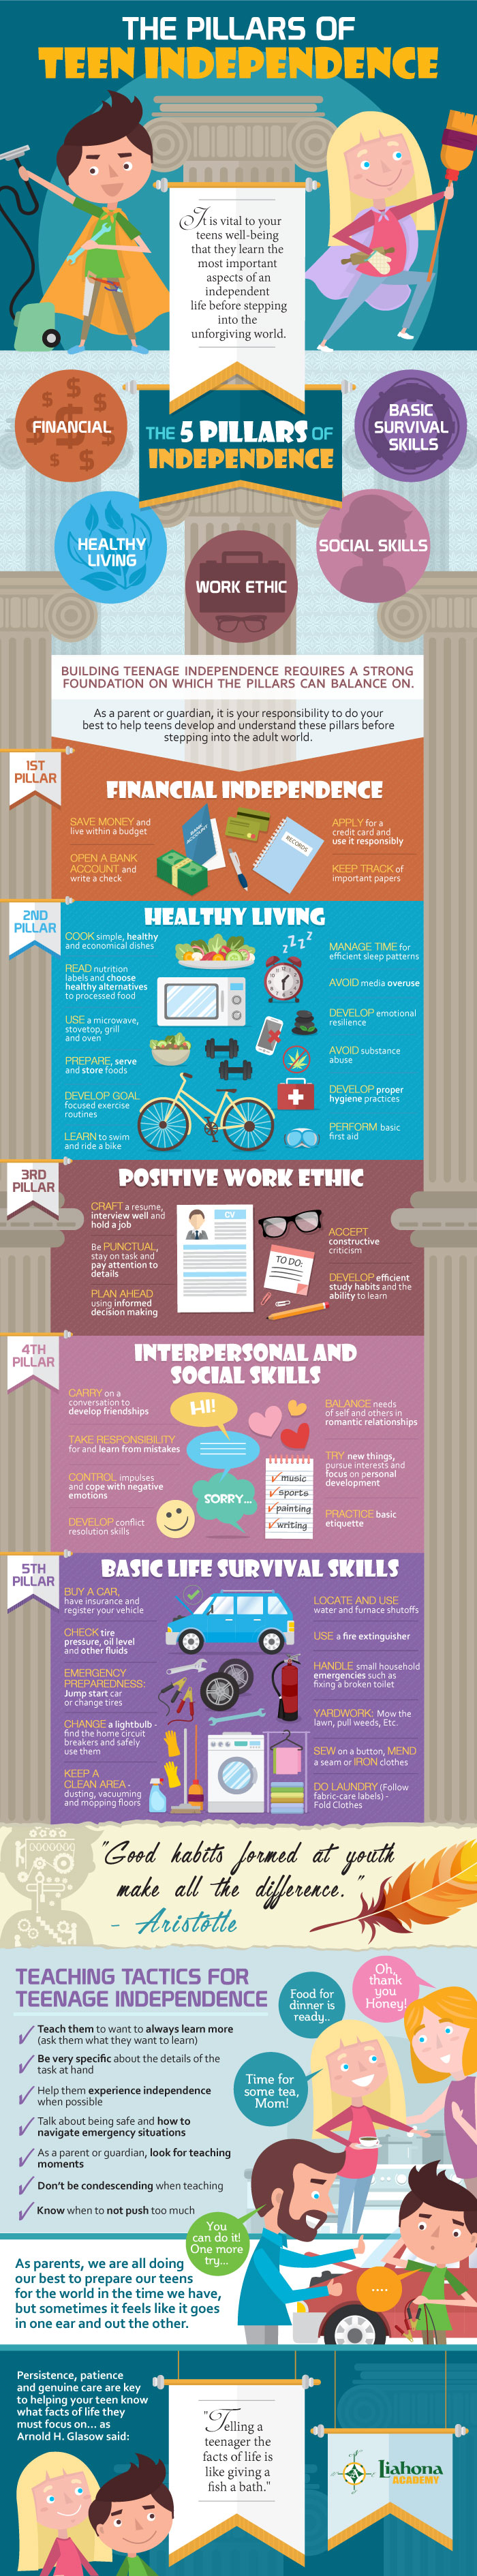 The Pillars of Teen Independence - Infographic